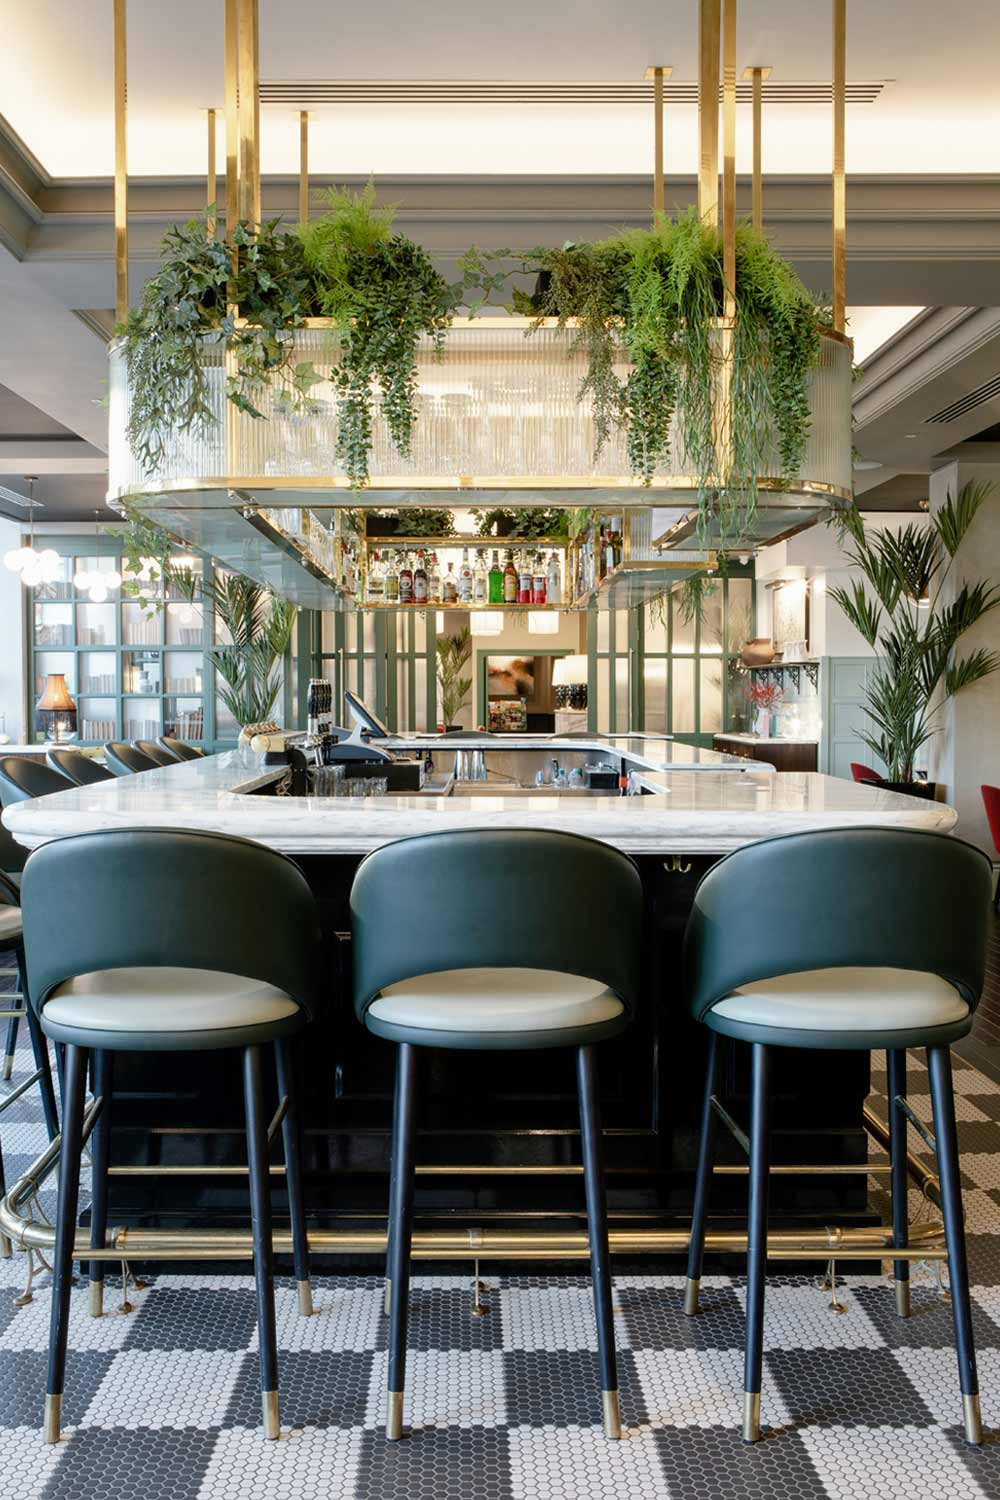 Design Interieur Hotel The Green Hotel Dublin Ruth Maria